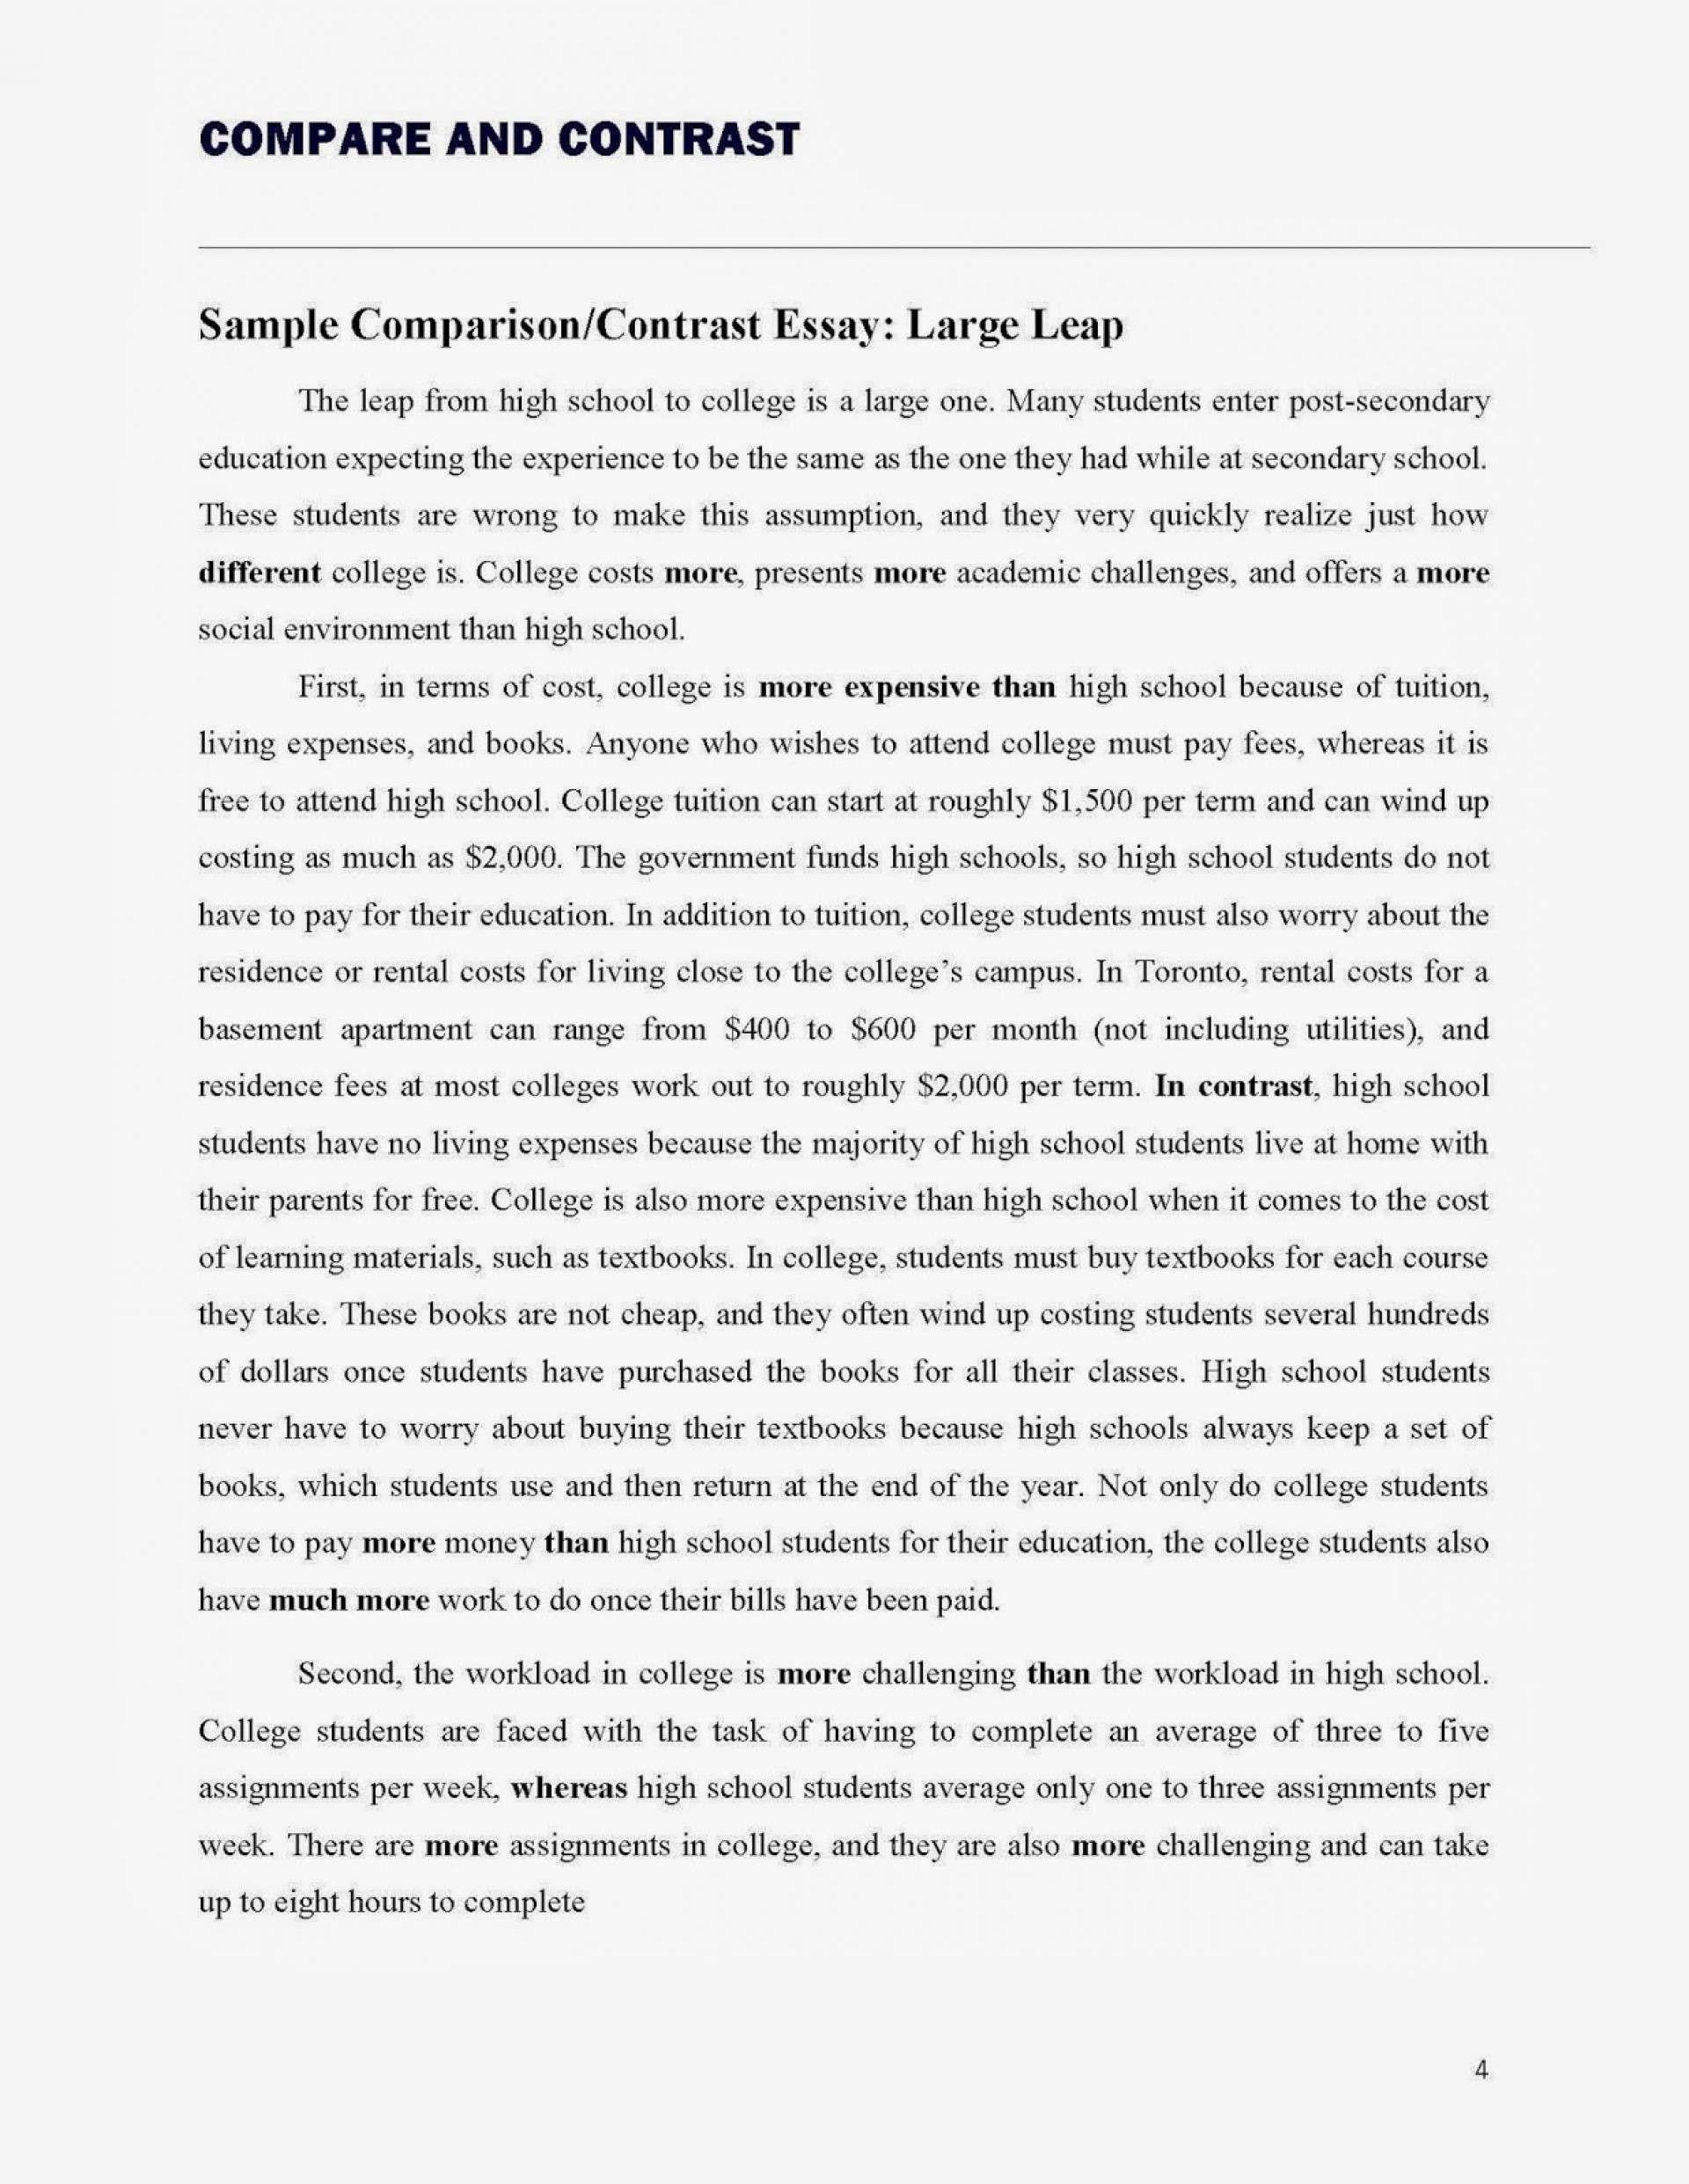 009 Compare20and20contrast20essay Page 4 Topics For Compare And Contrast Essay Amazing Essays Middle School Fun 1920